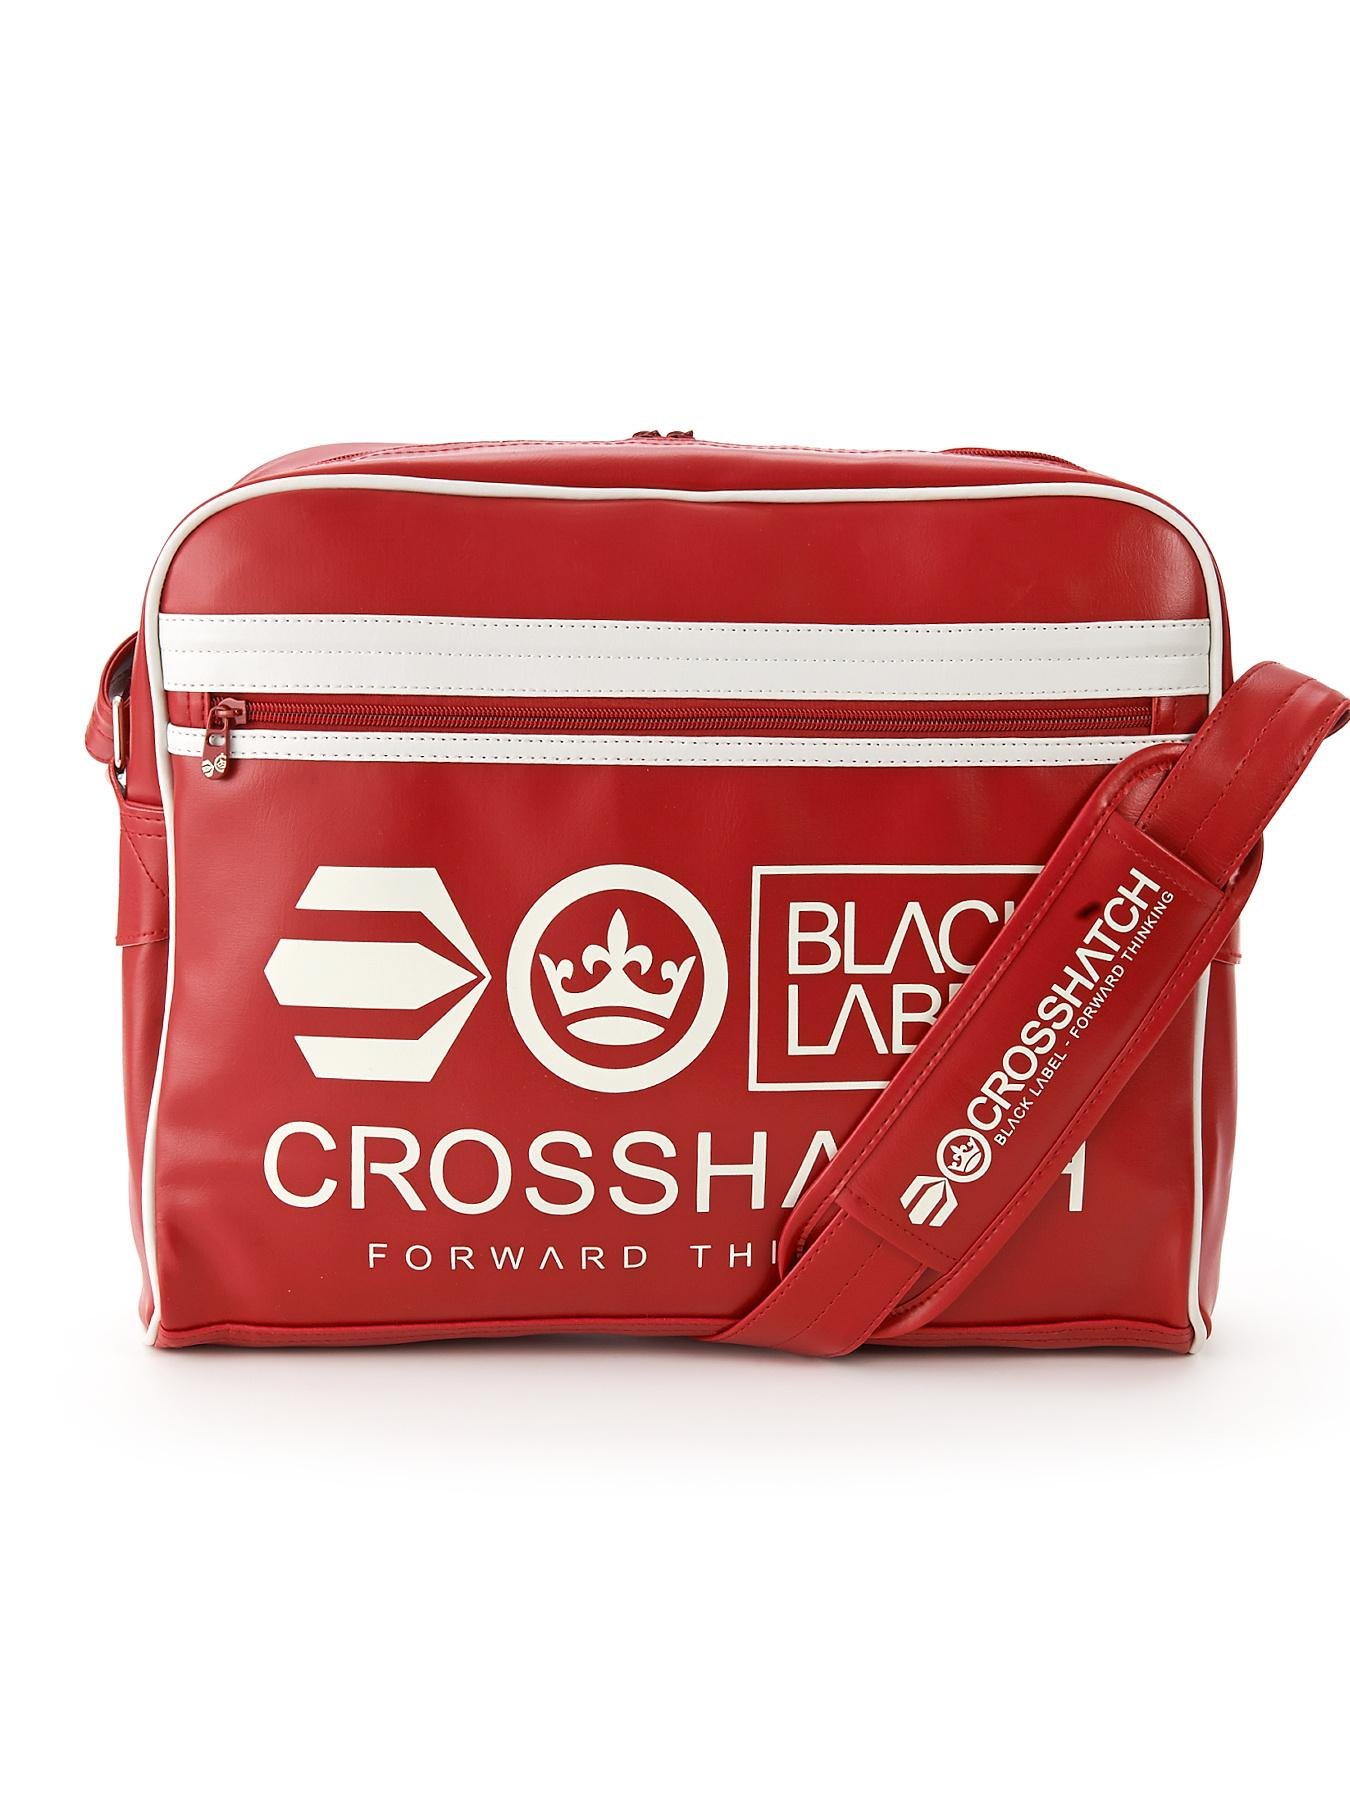 Crosshatch Mens Messenger Bag - Red, Red